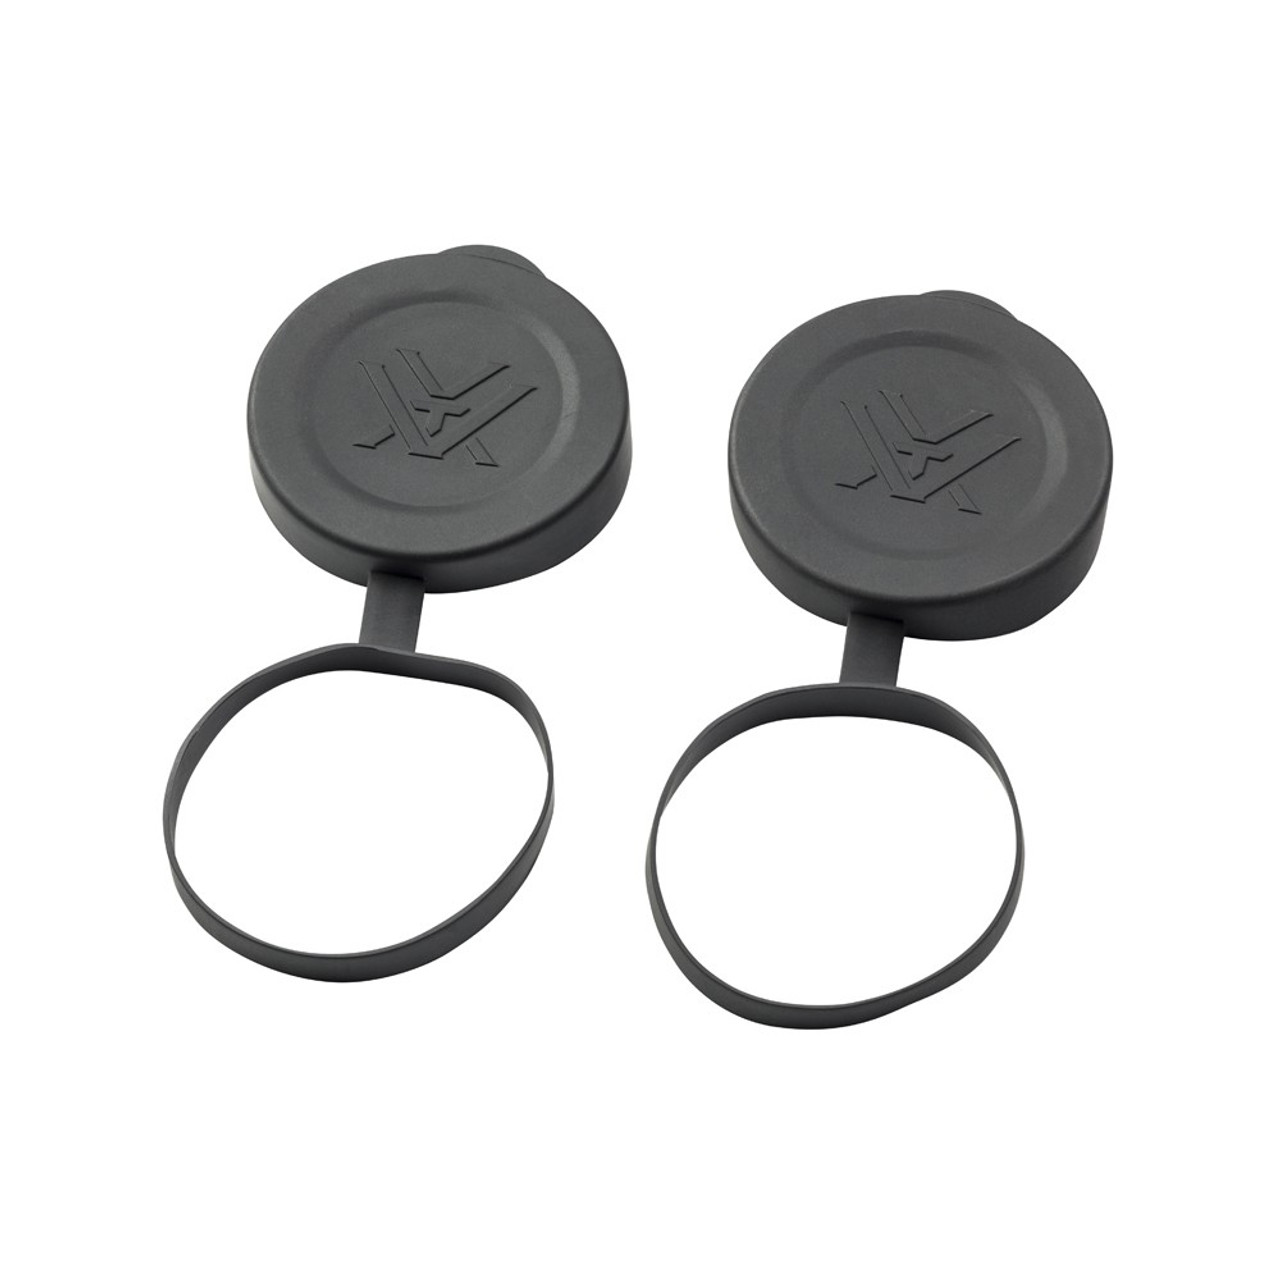 Tethered Objective Lens Covers 50mm Crossfire